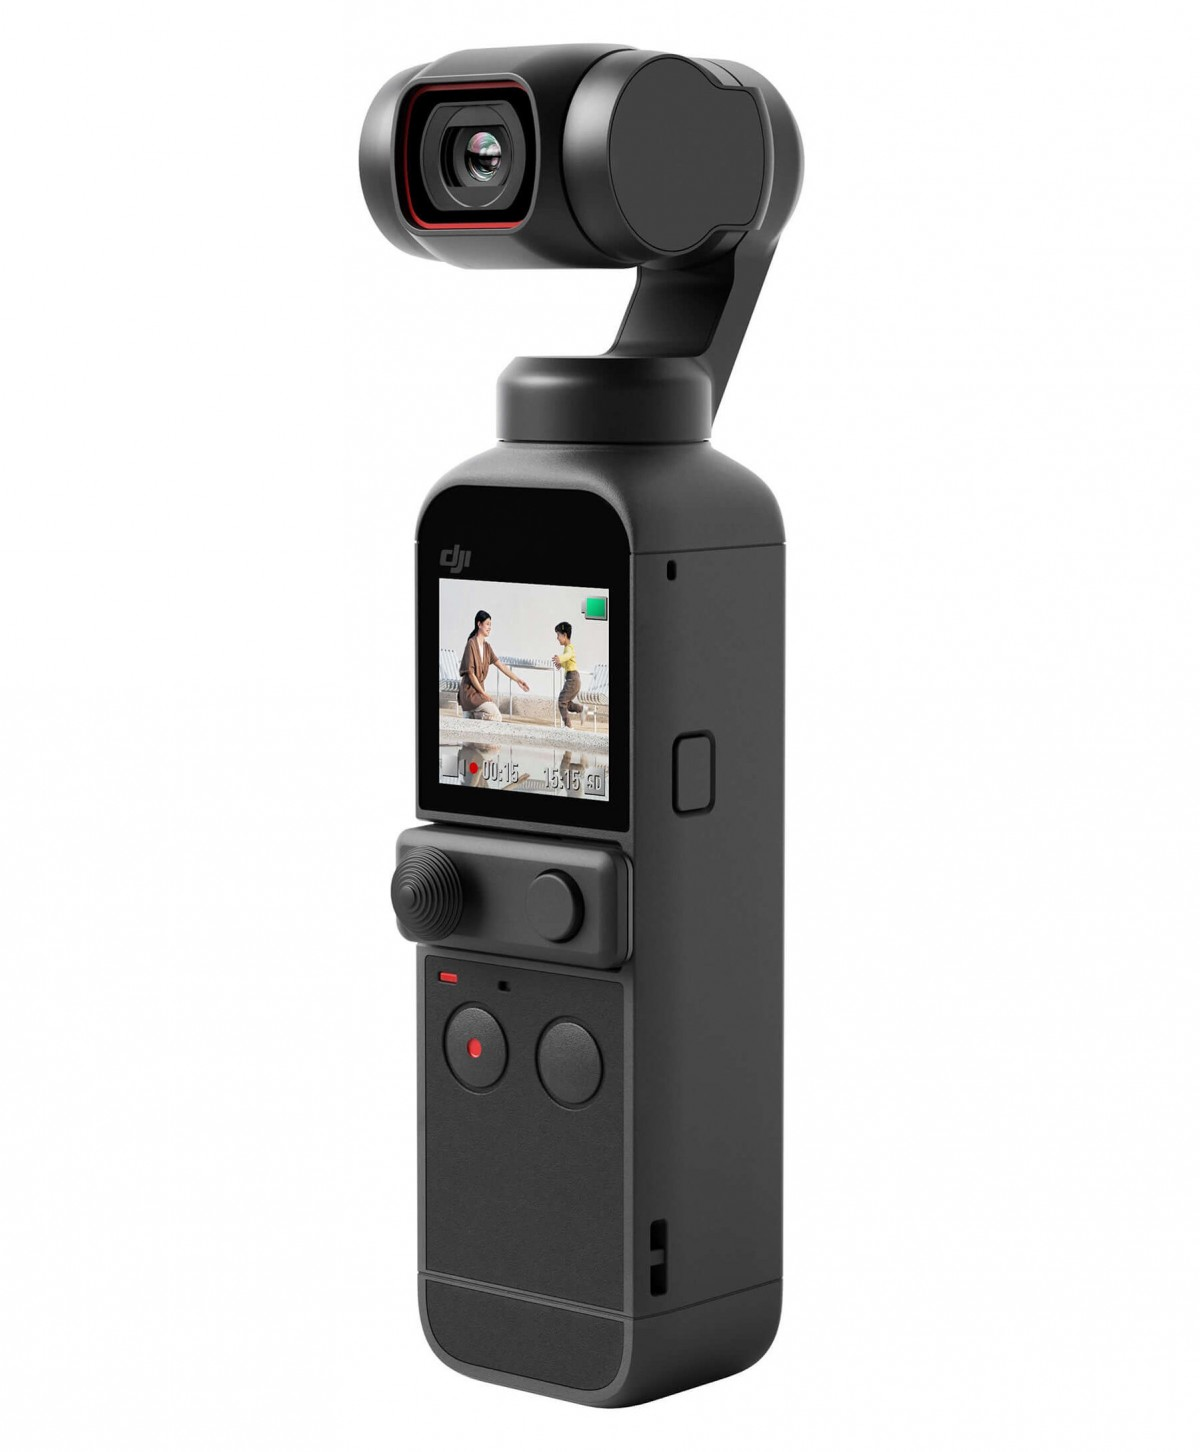 DJI Pocket 2: Small, stabilised 4K camera with more features